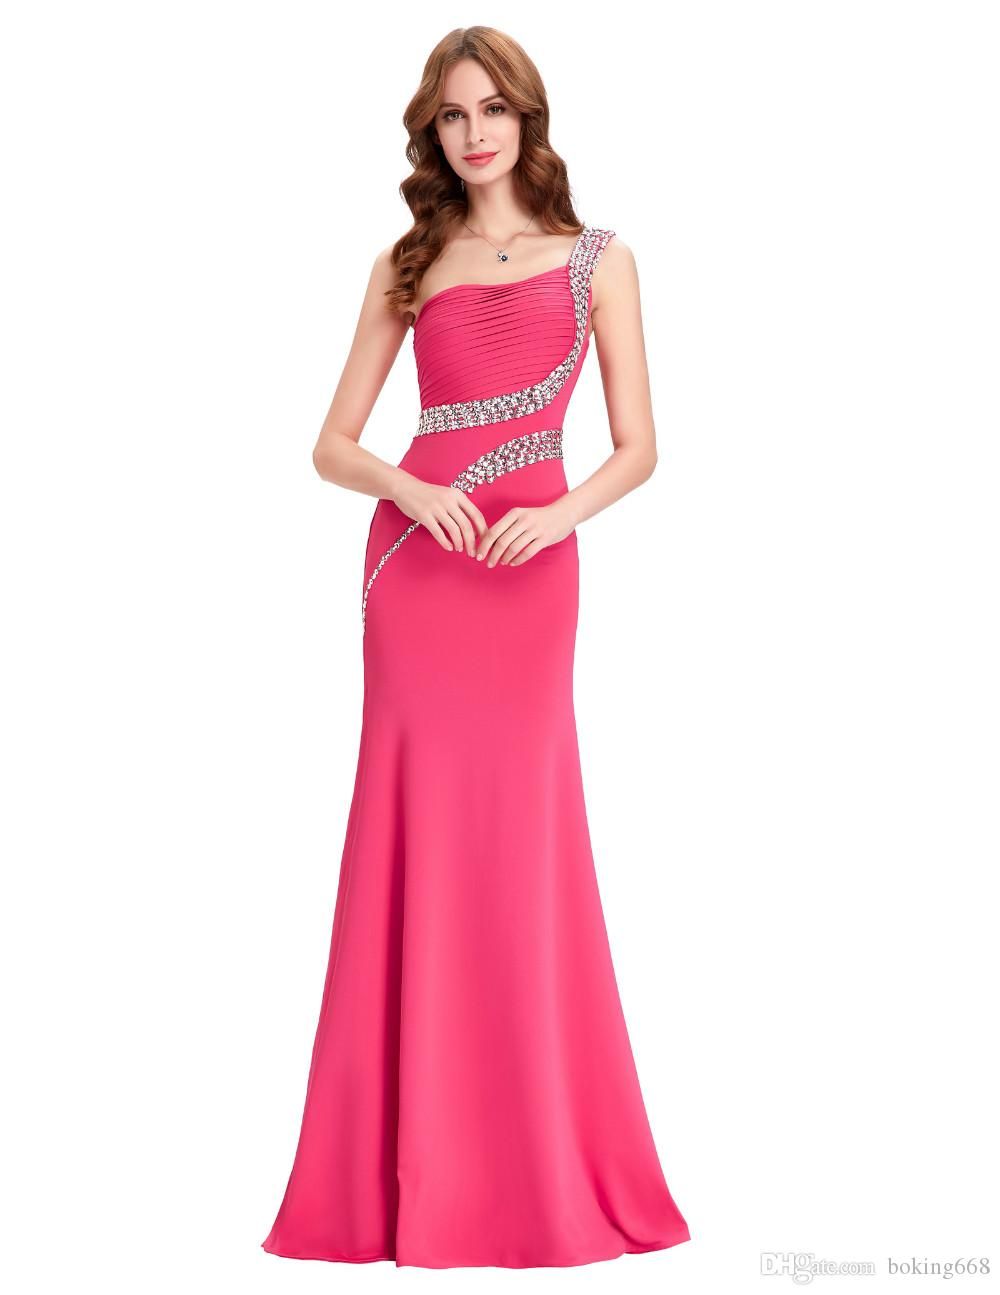 2018 New Arrival Cheap Prom Party Dresses Crystal Prom Dresses Sexy ...